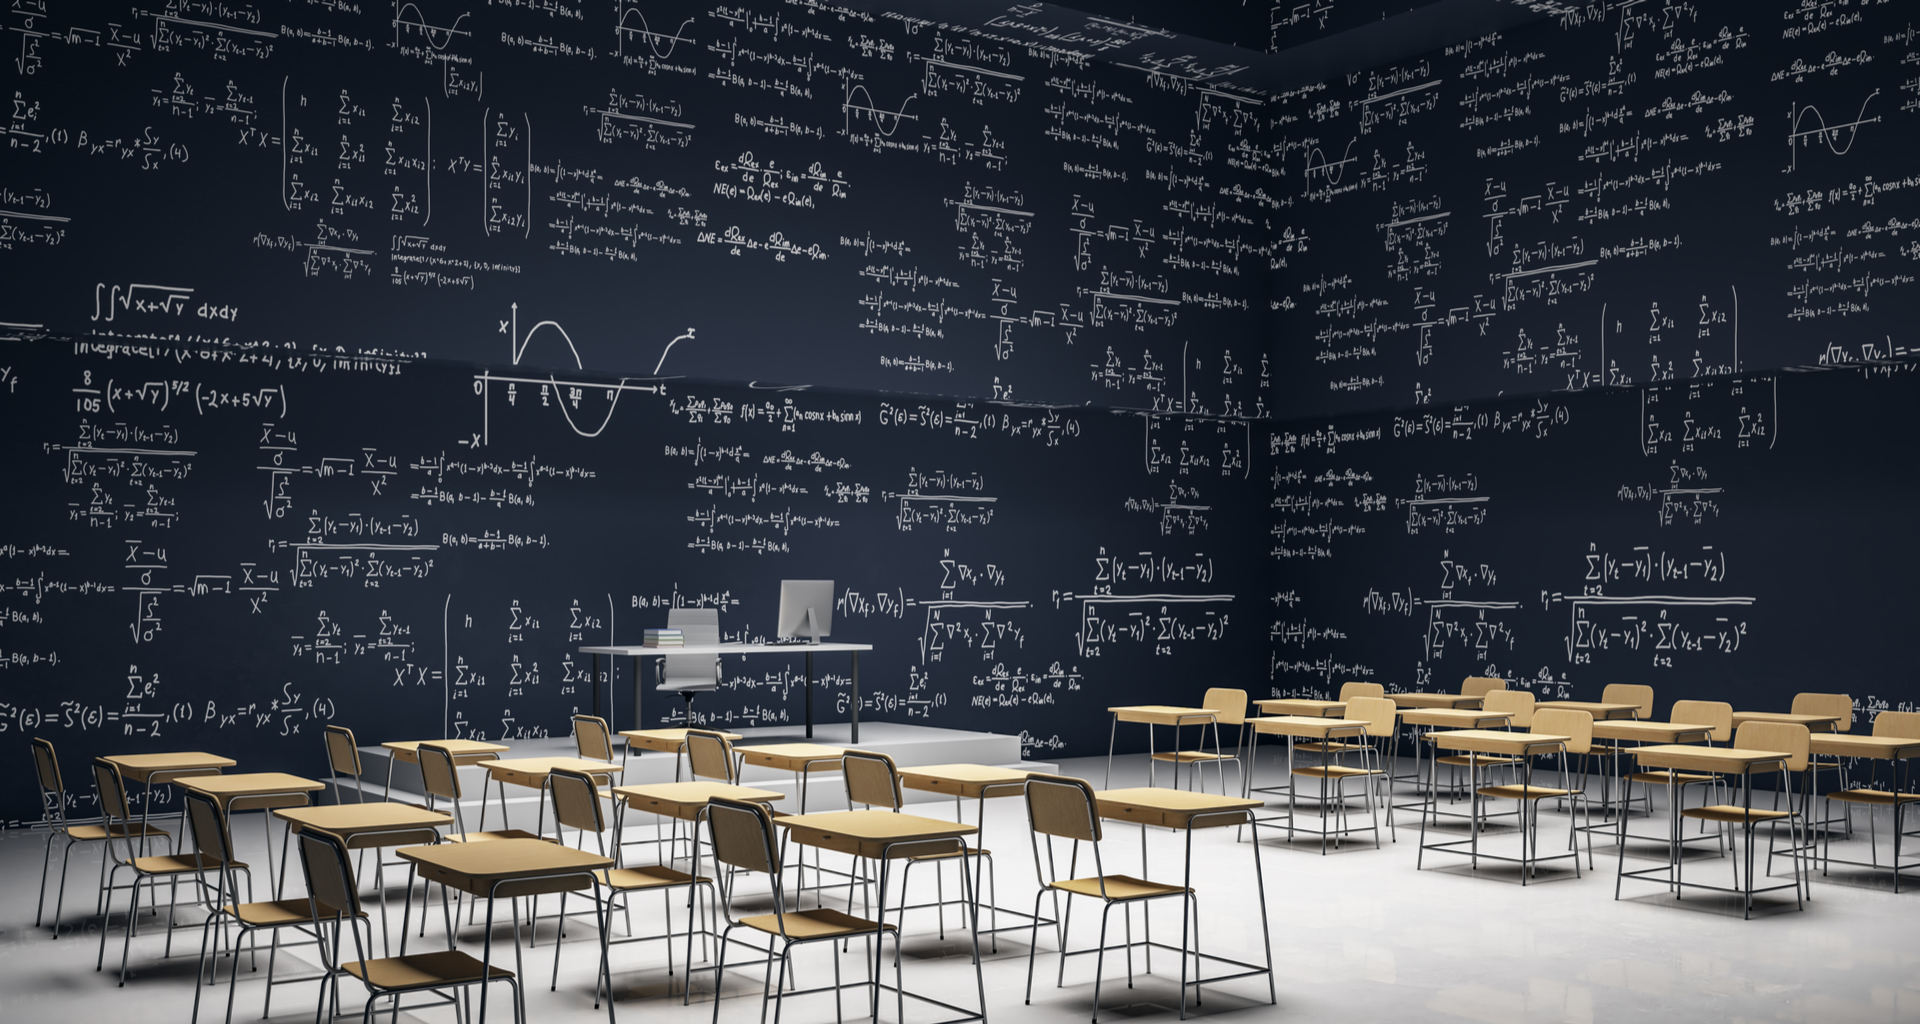 stock-photo-luxury-classroom-interior-with-furniture-and-mathematical-formulas-on-wall-math-and-complex